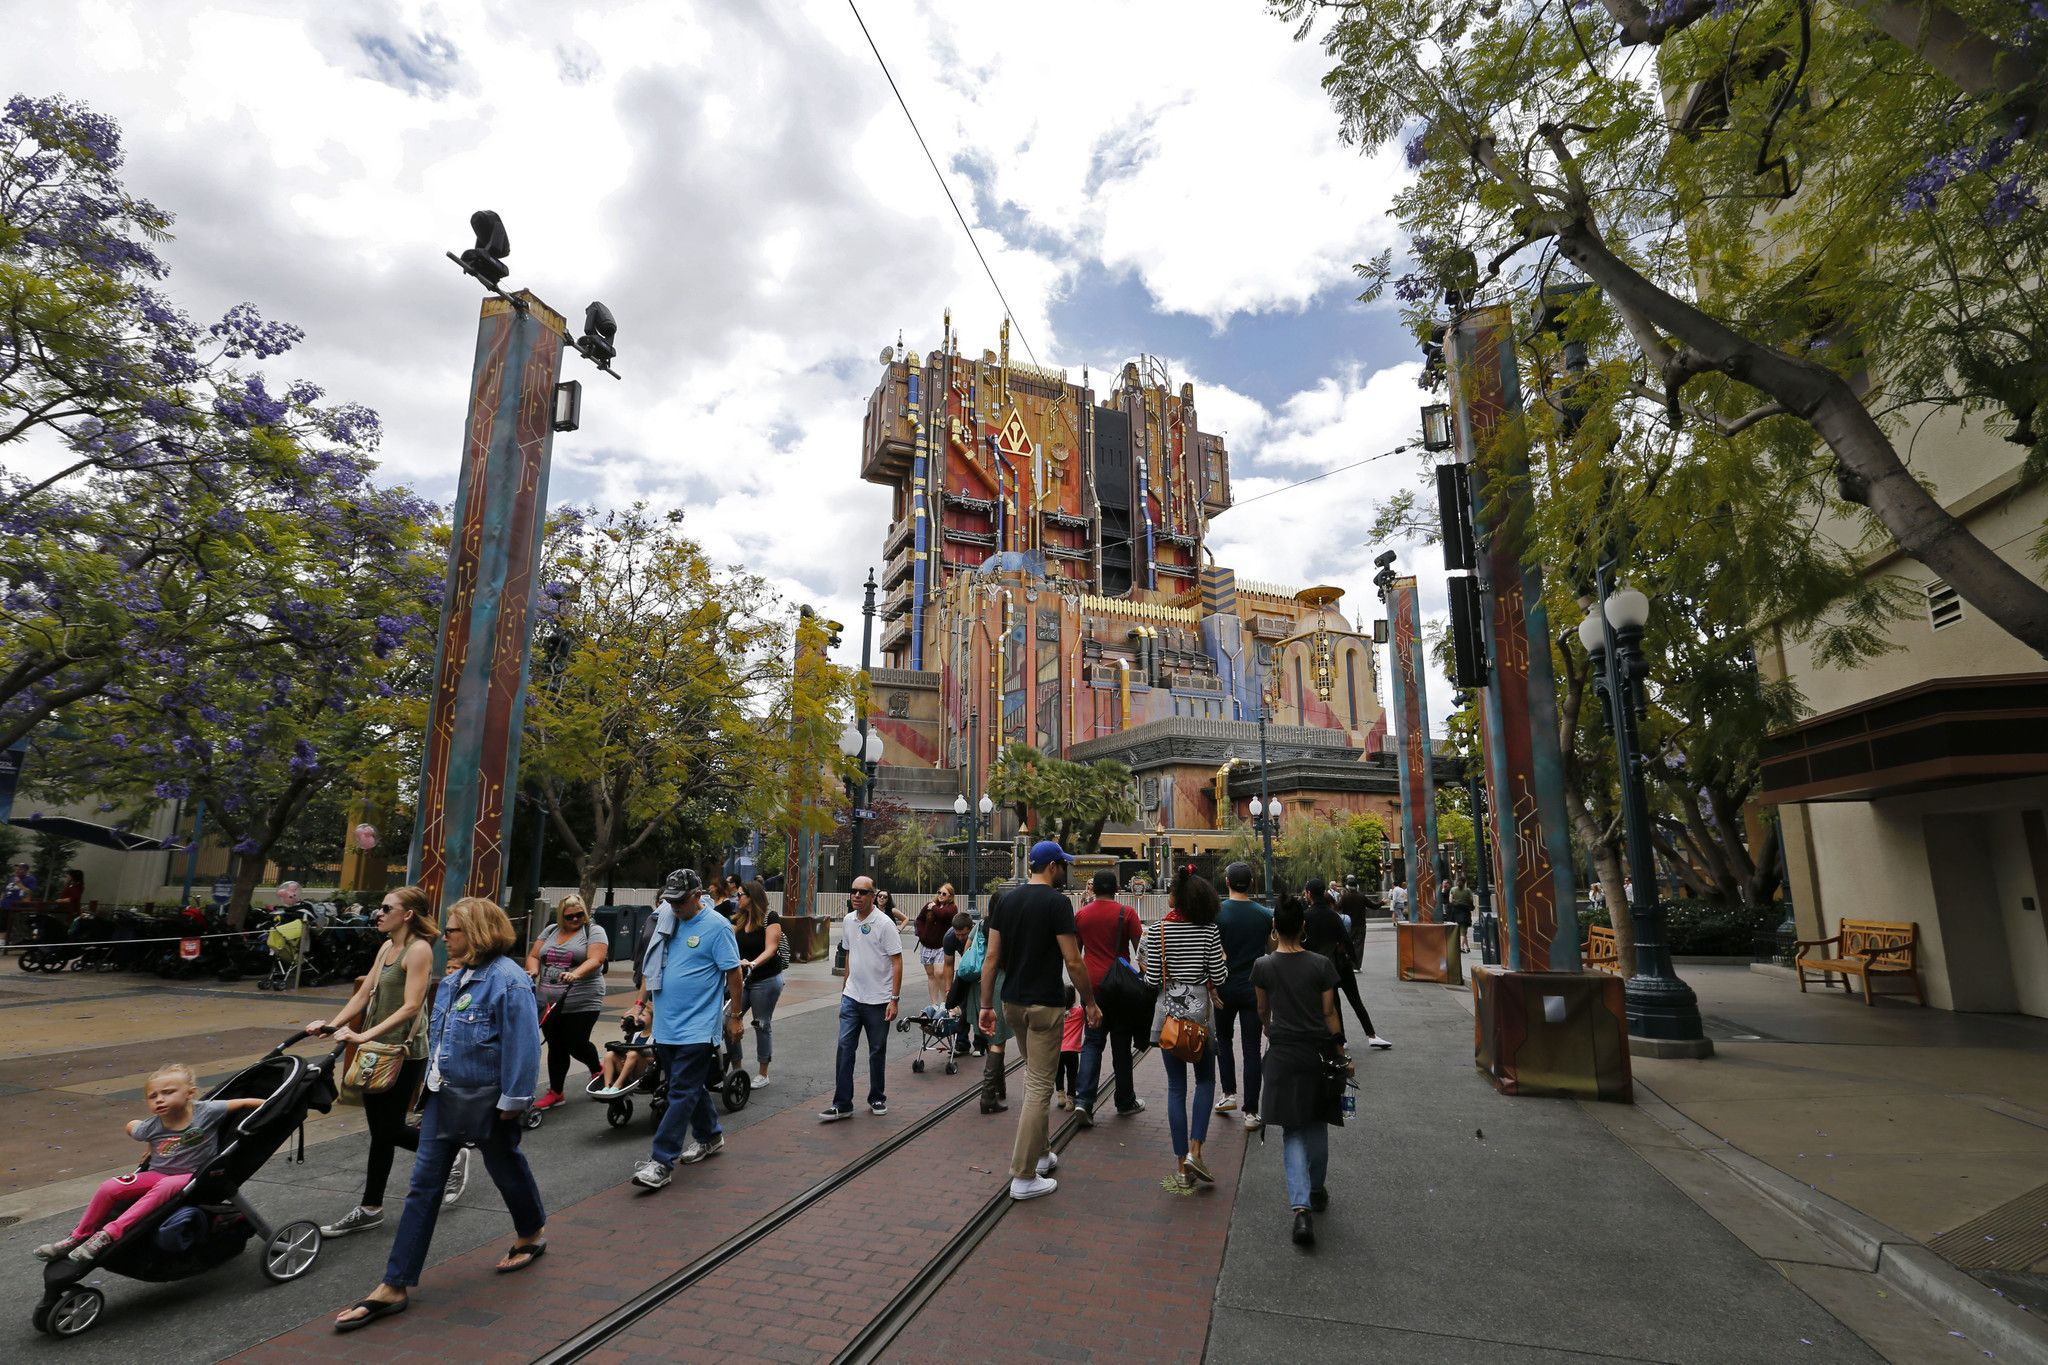 How Disney fit a Guardians of the Galaxy space age power plant into a theme park - Los Angeles Times